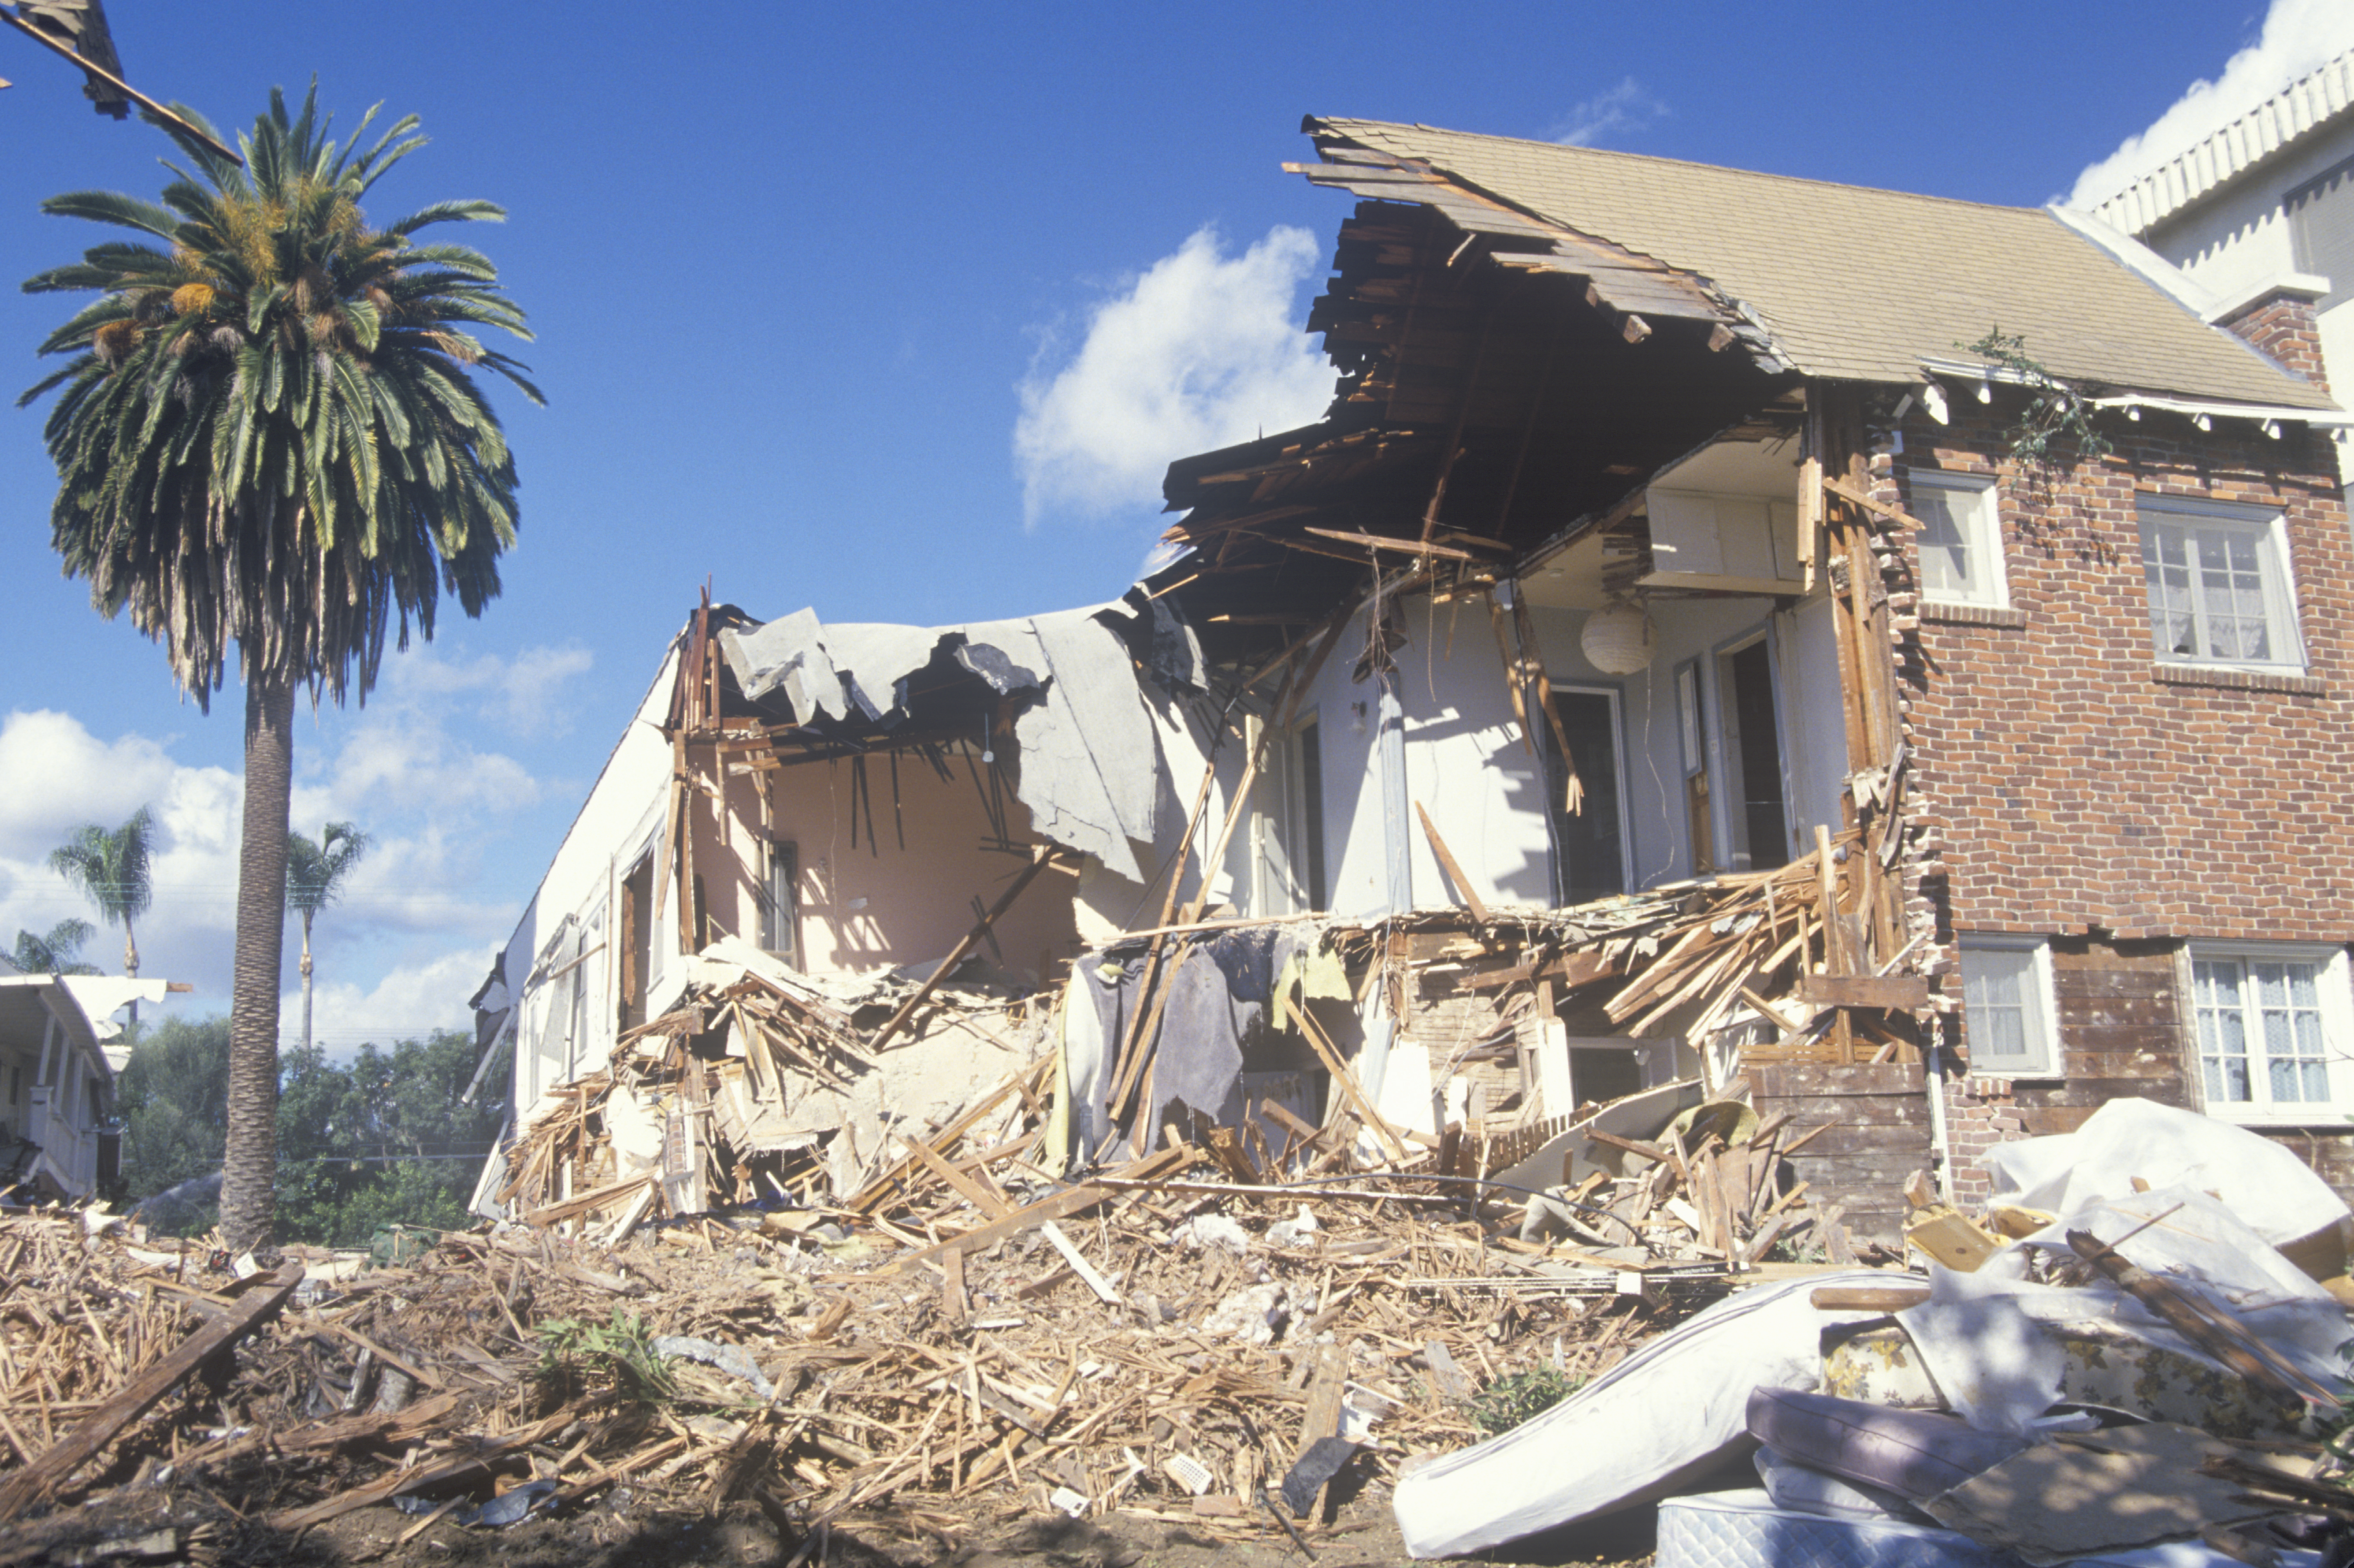 LA's next big earthquake could displace 270,000 people